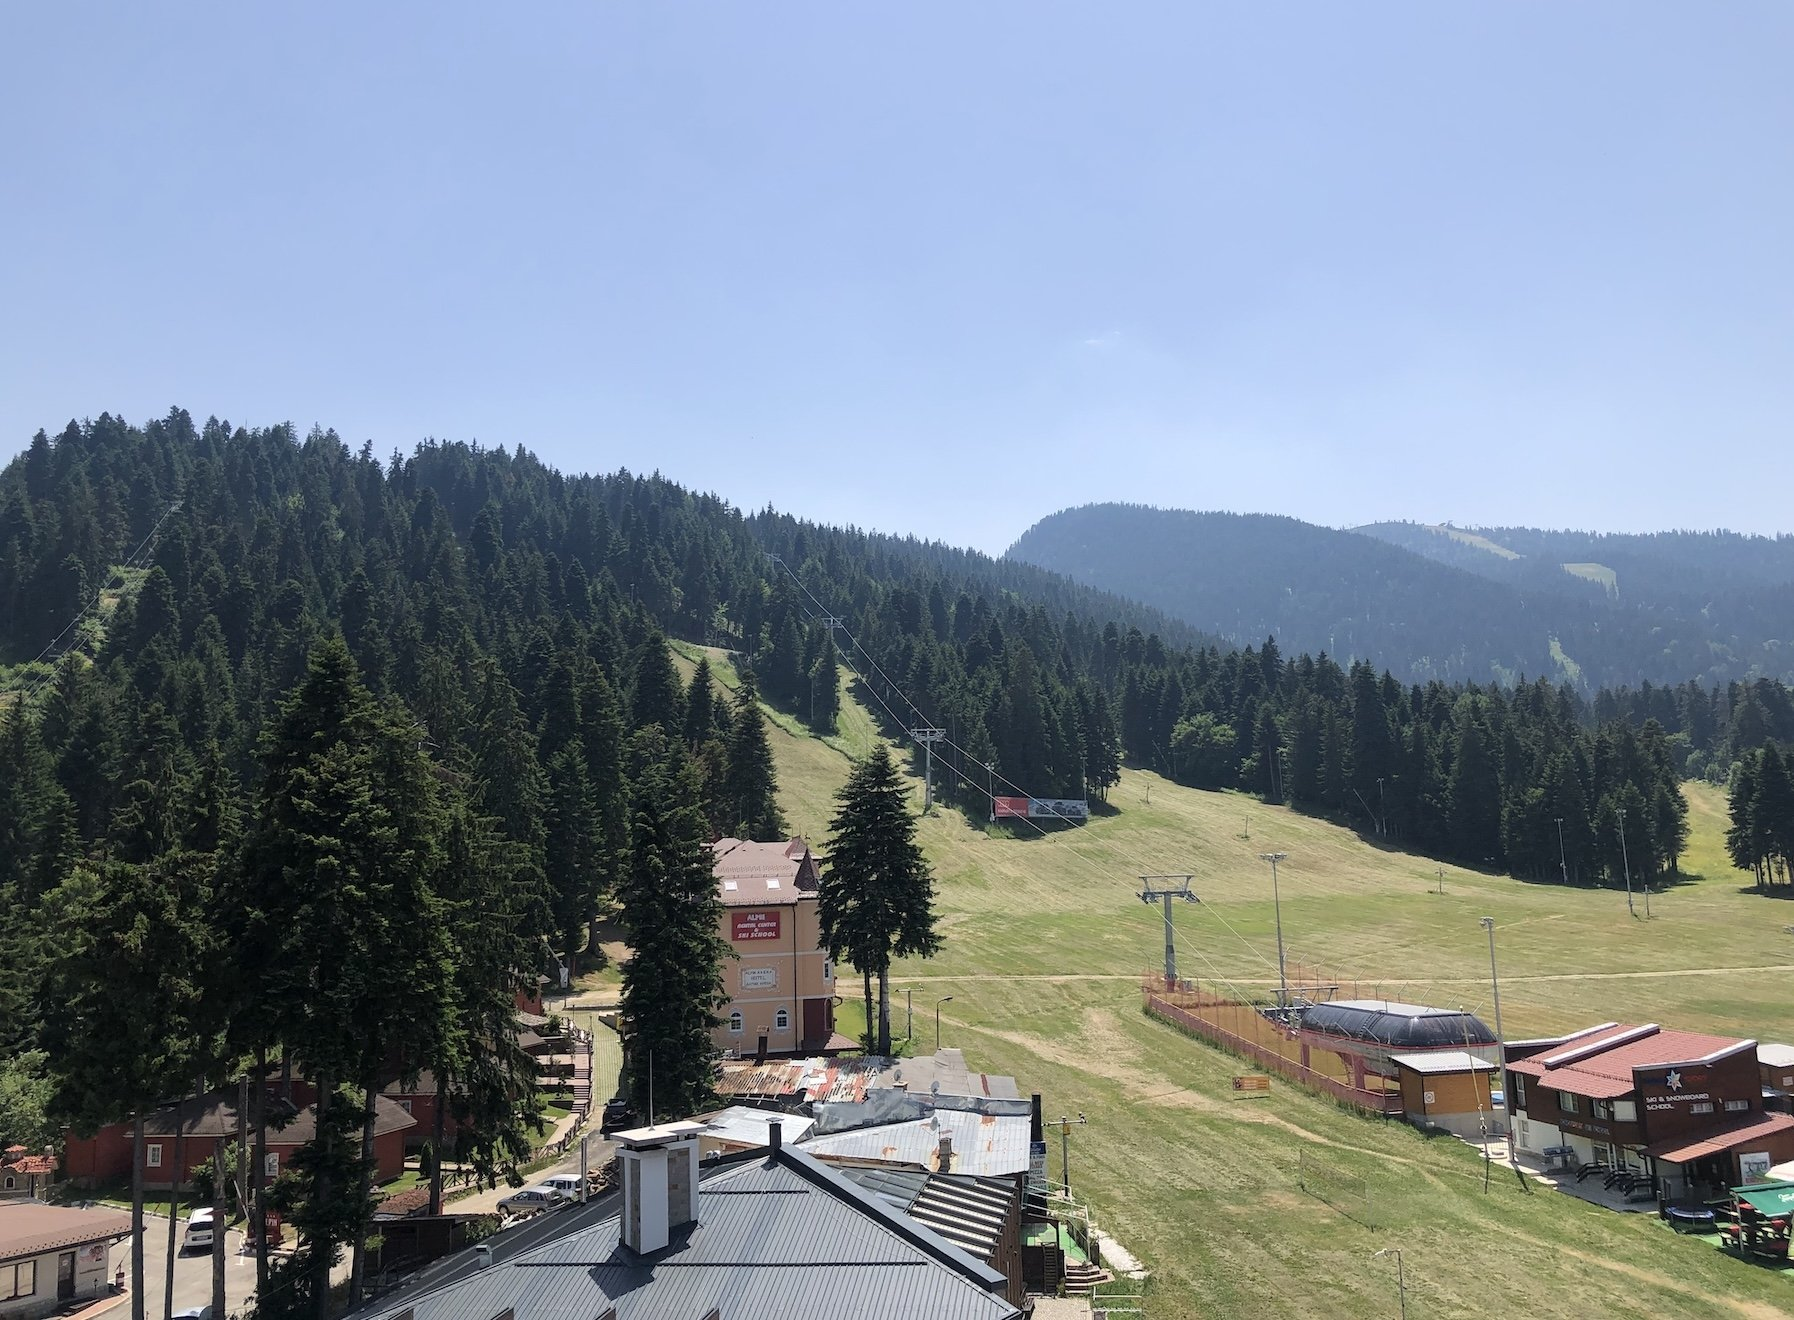 A view of Borovets from Hotel Rila, Bulgaria.